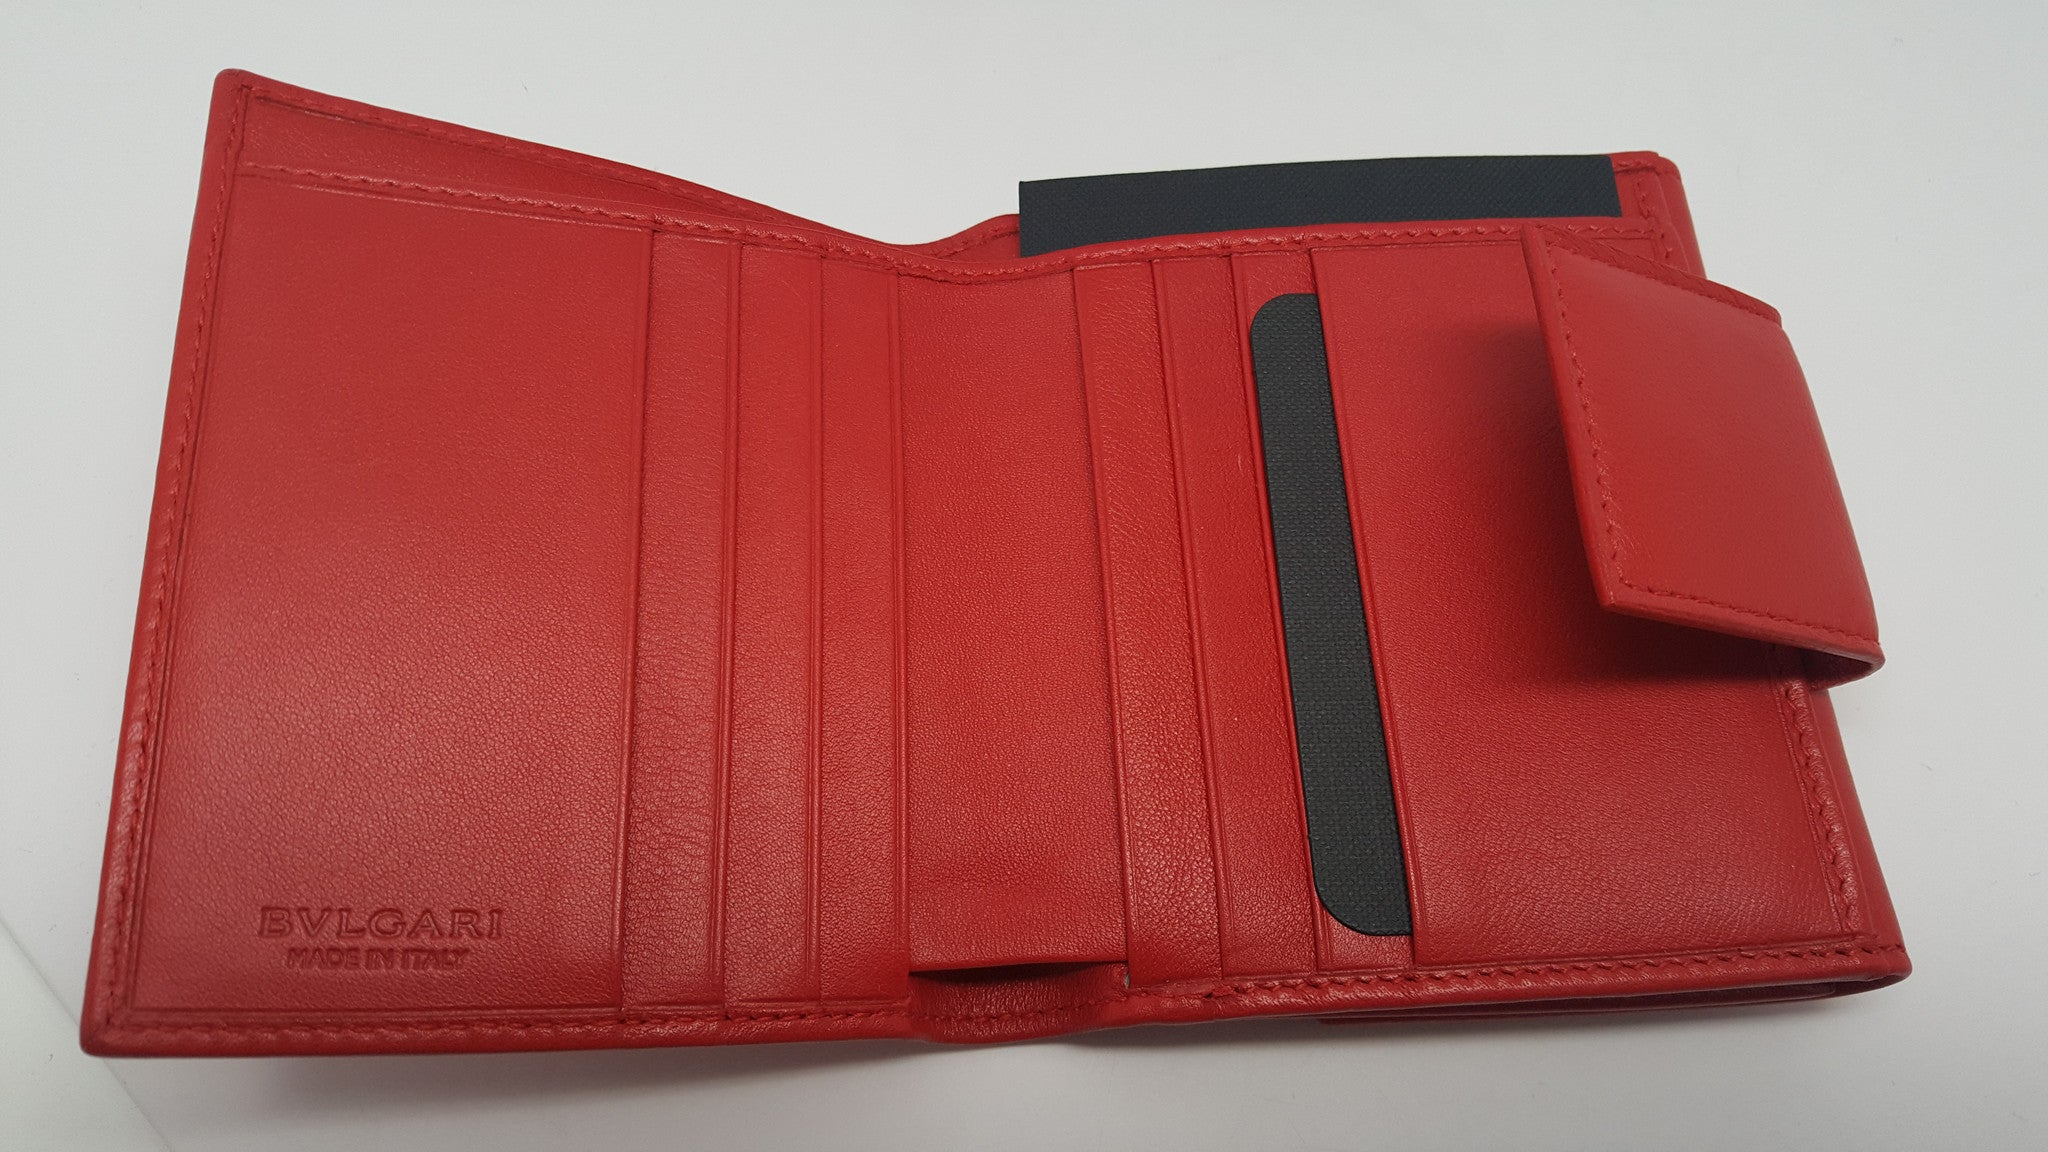 BVLGARI TWO-FOLD WALLET - SHANGHAI RED